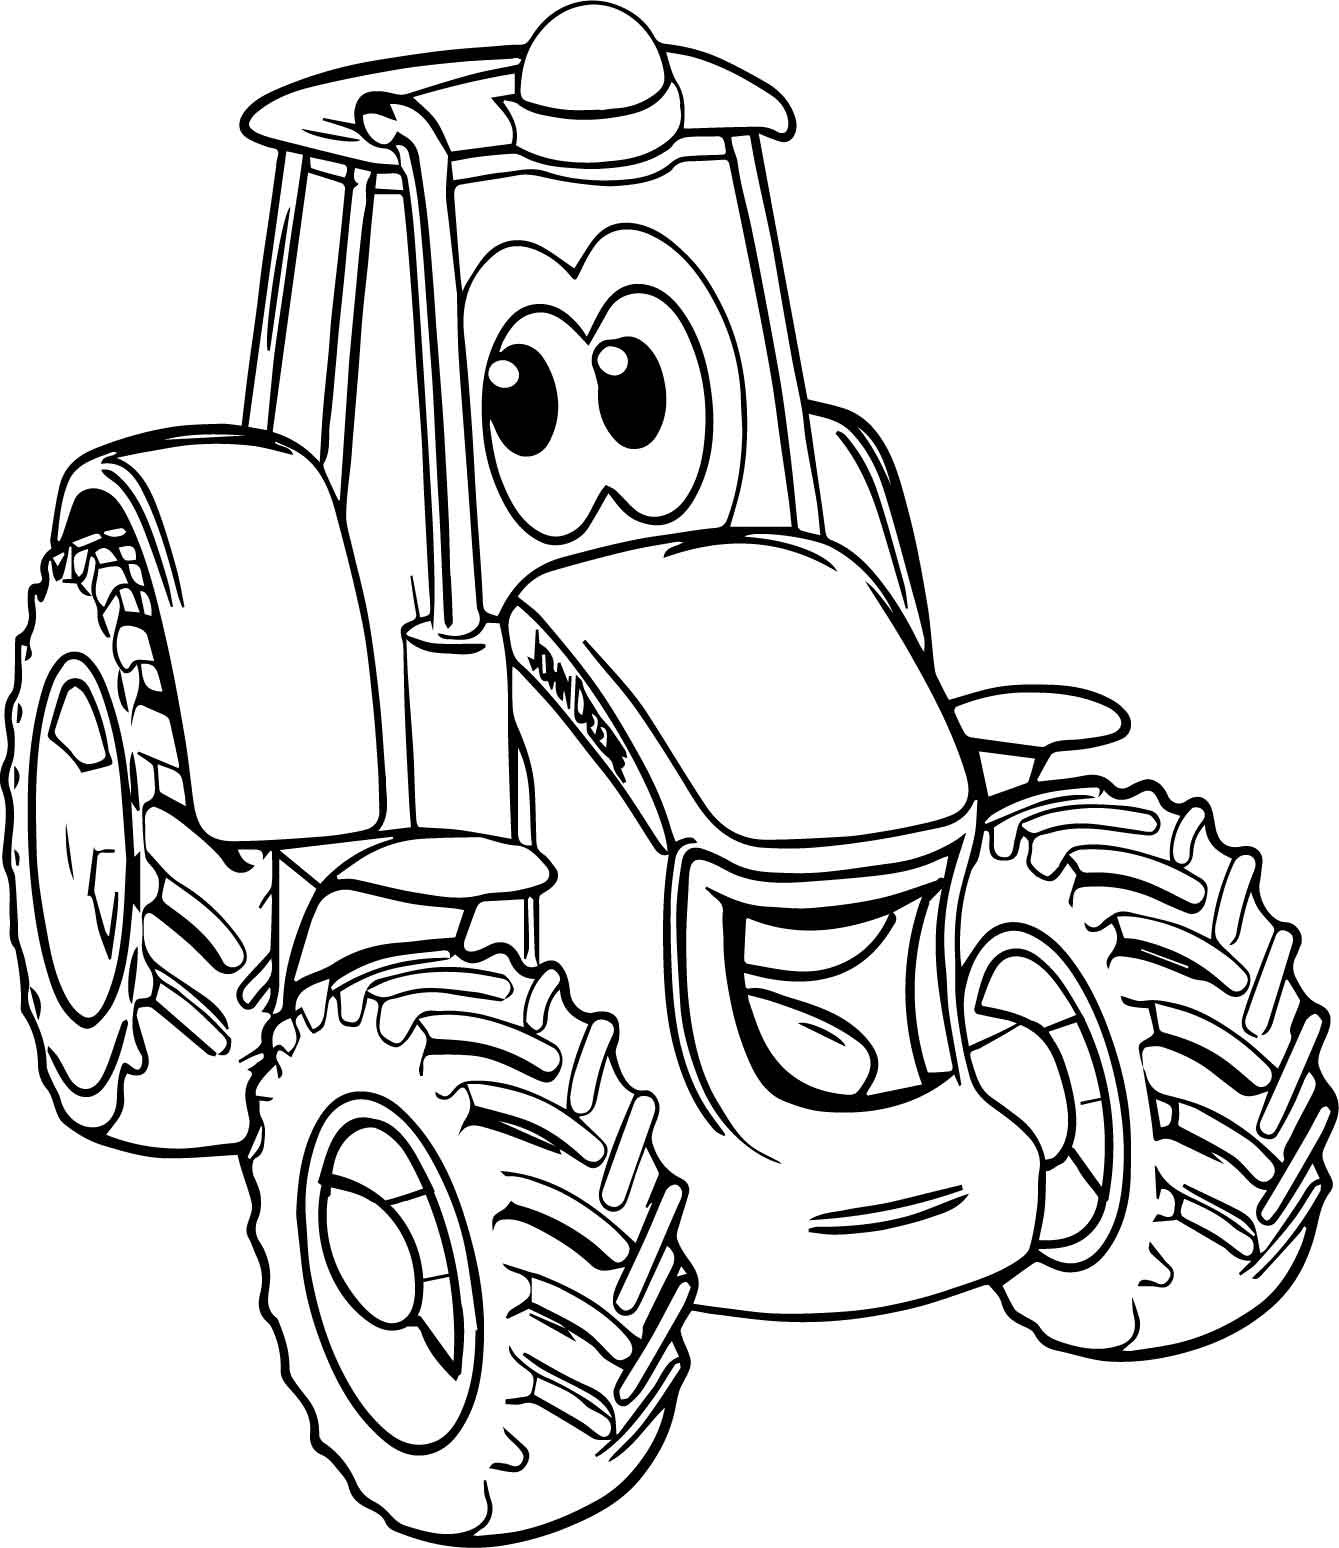 Tractor Coloring Pages At Getdrawings